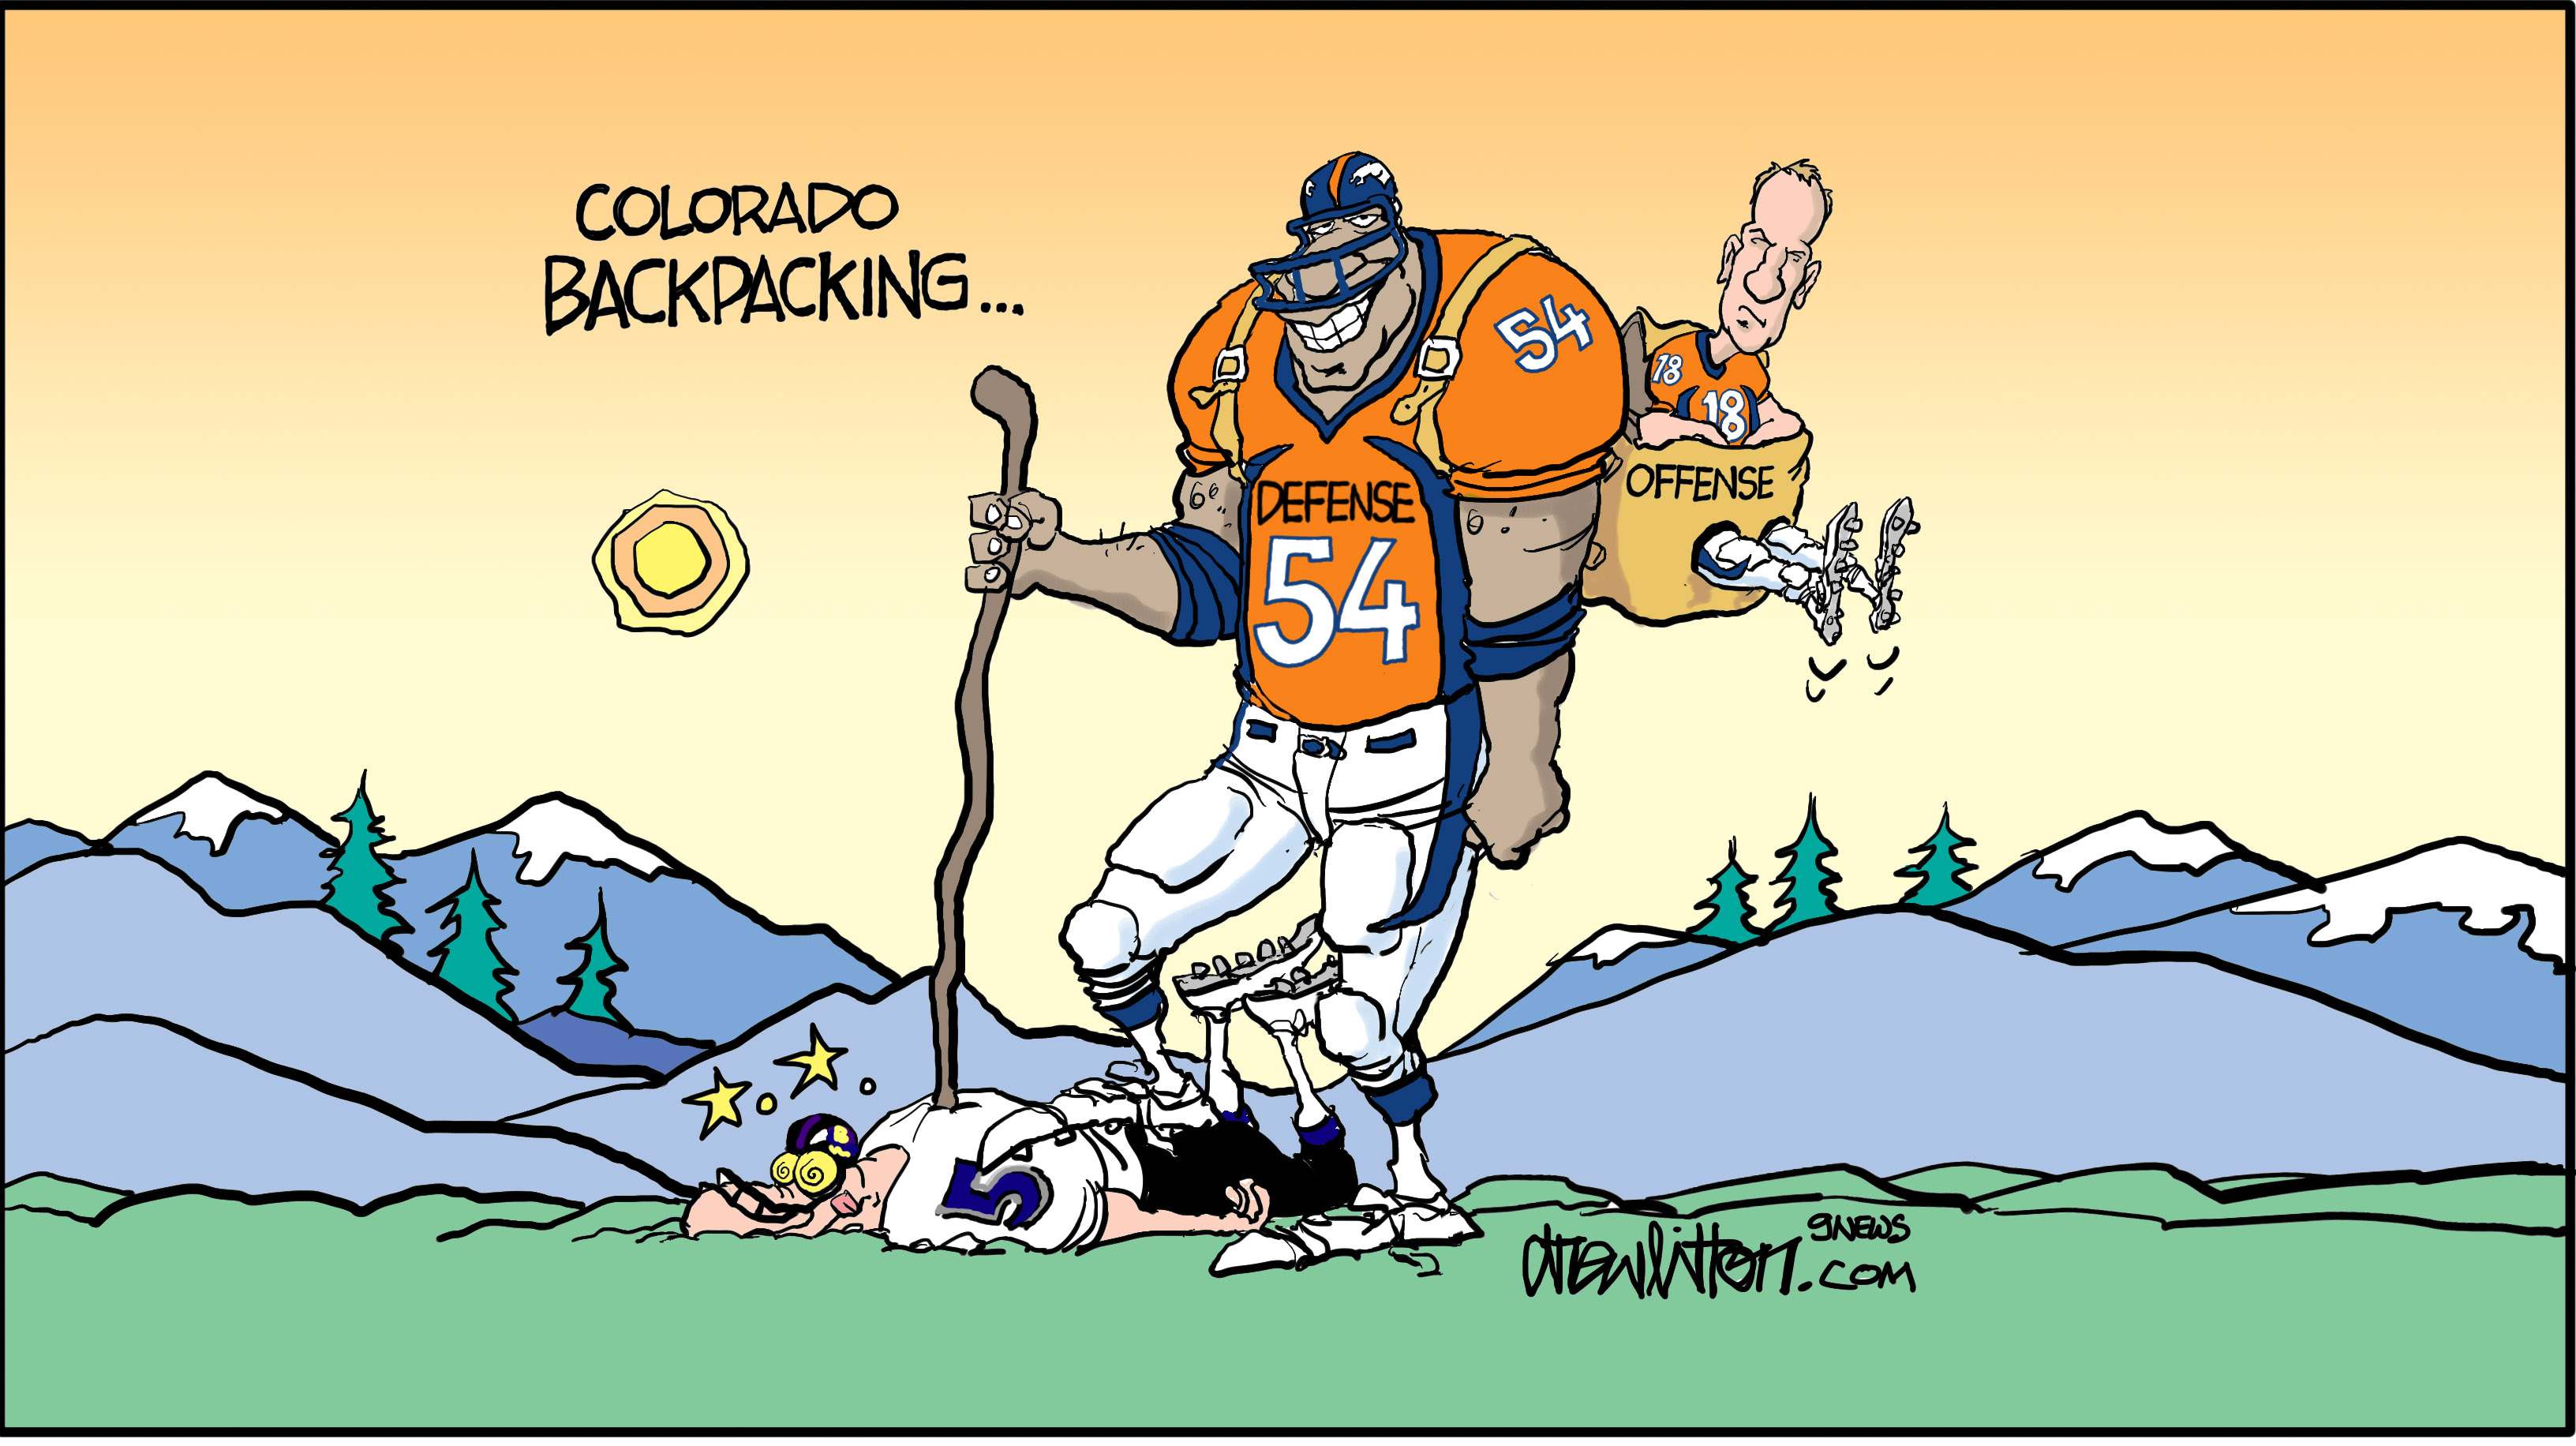 coloradobackpackingcolor1